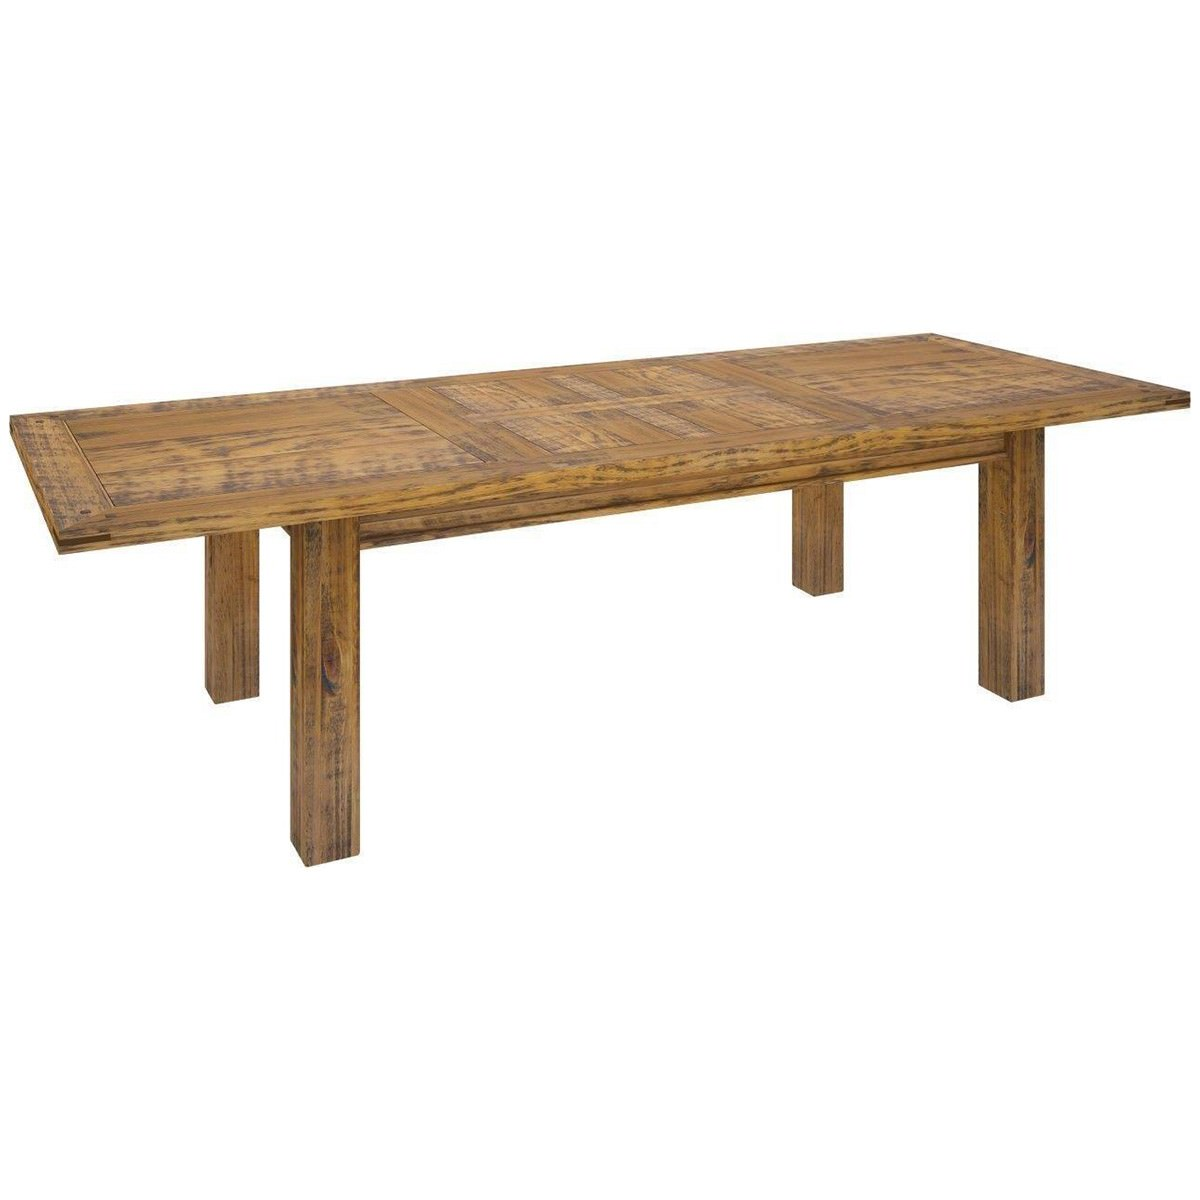 Serafin Rustic Pine Timber Extension Dining Table, 210-310cm